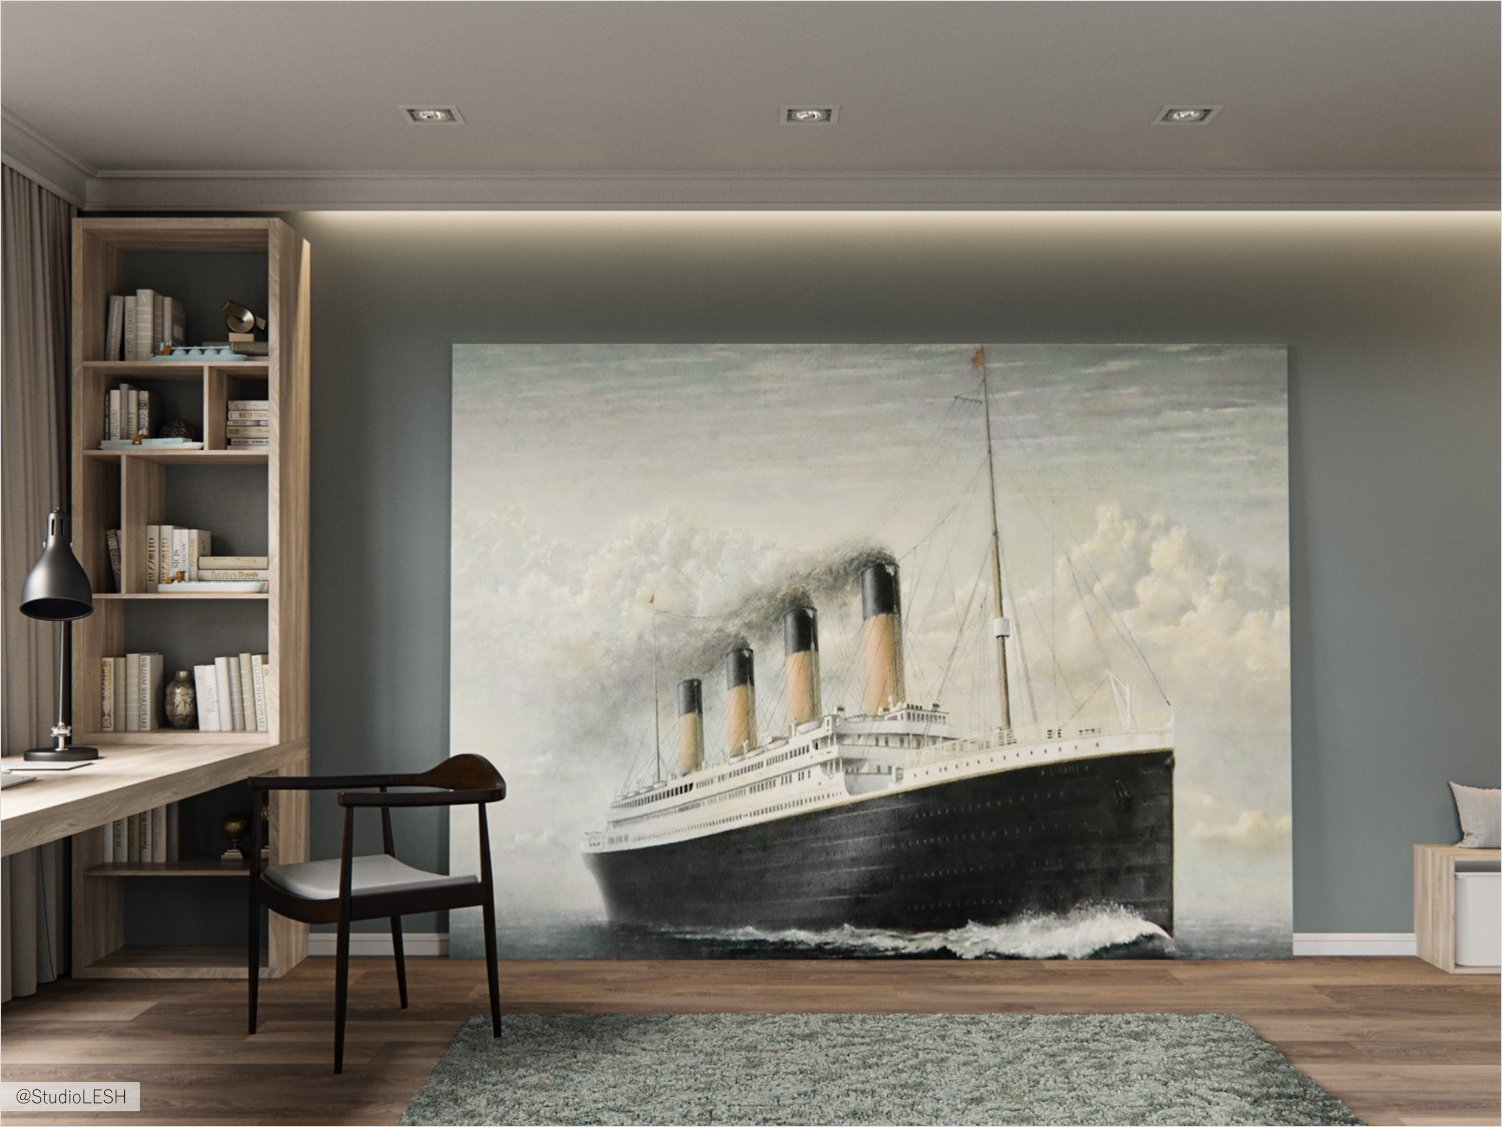 Designing of a children's room with a large picture of the ship